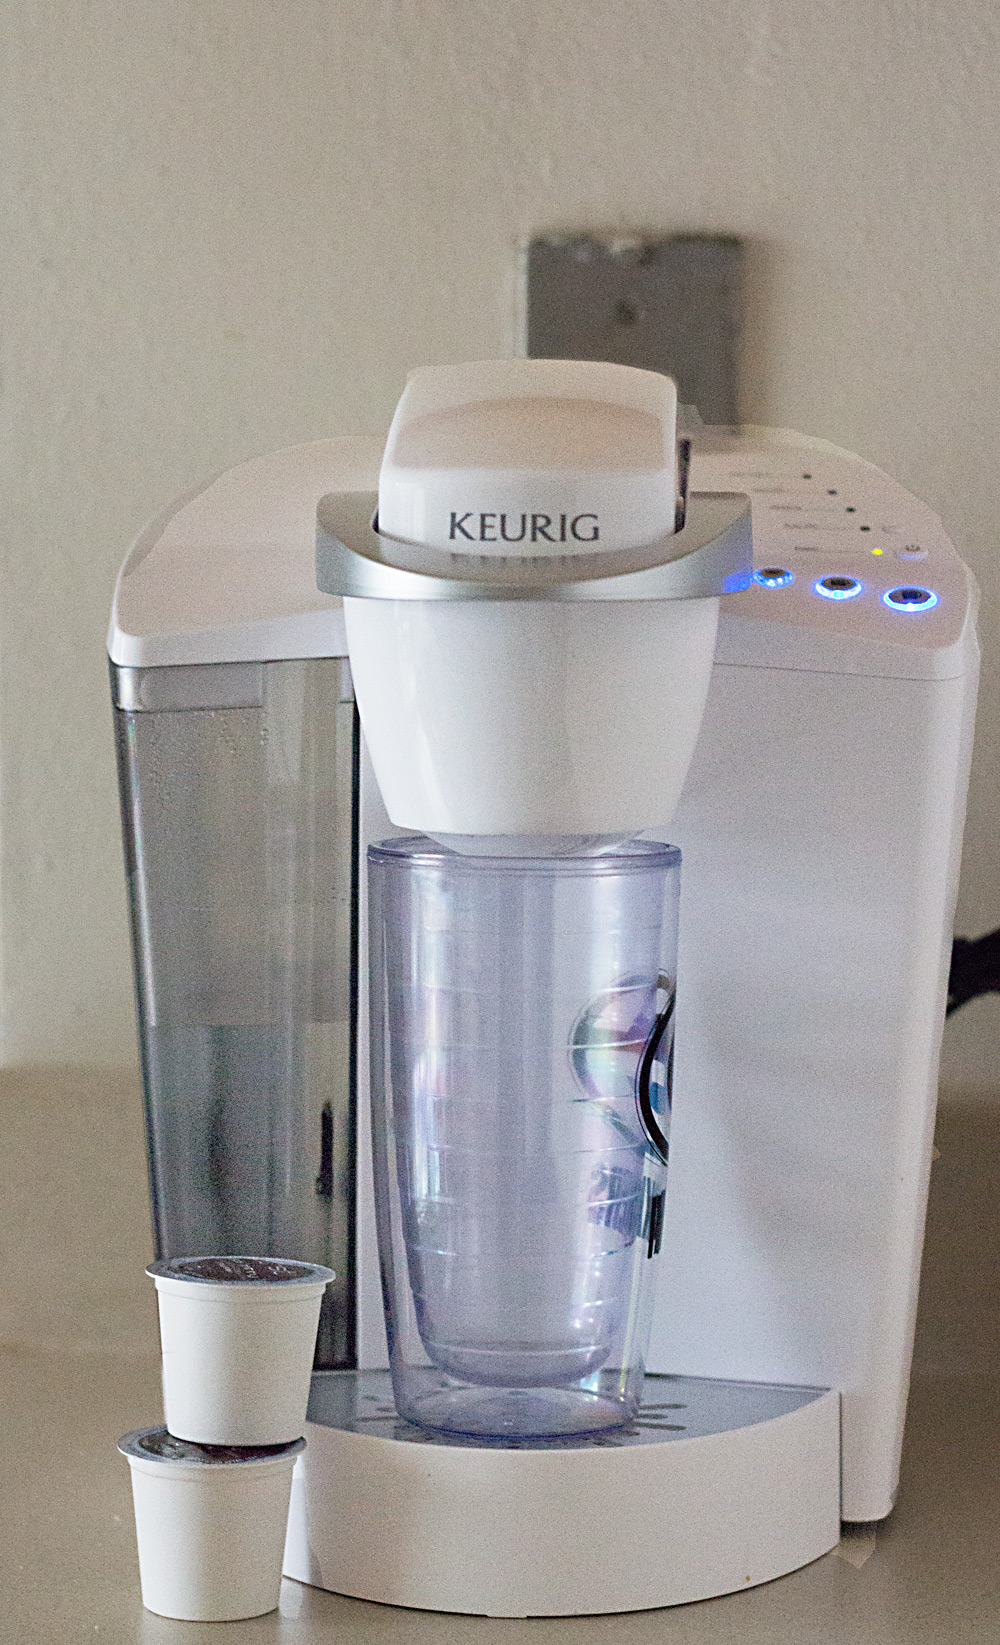 Keurig Coffee Maker Hot And Cold : How to Make Iced Coffee ~ Wishes DO Come True!